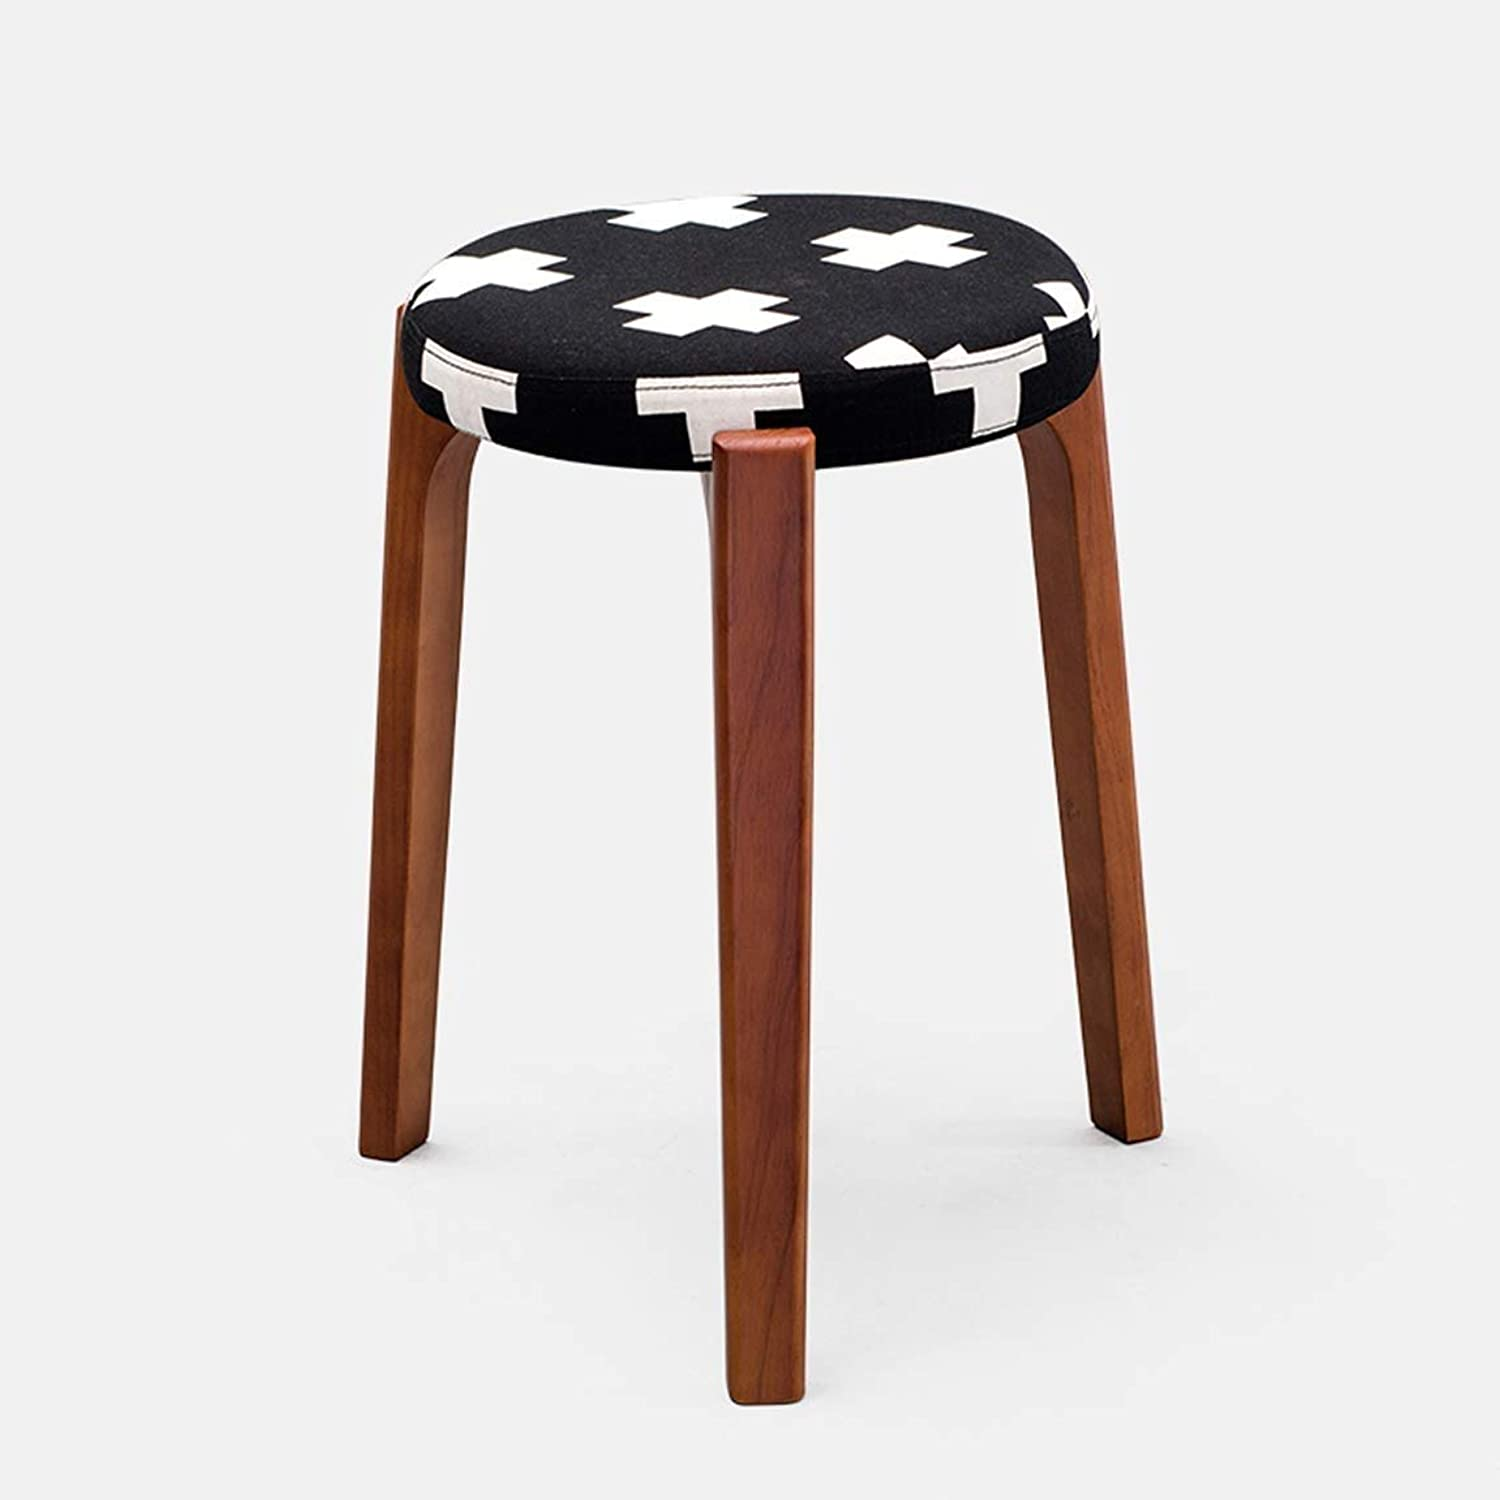 Creative Small Stool, Solid Wooden Dining Stool, Square Stool, Dressing Stool, Simple Fashionable Dressing Stool, Bench, Household Stool, Brown Leg 8 GMING (color   Brown Leg)